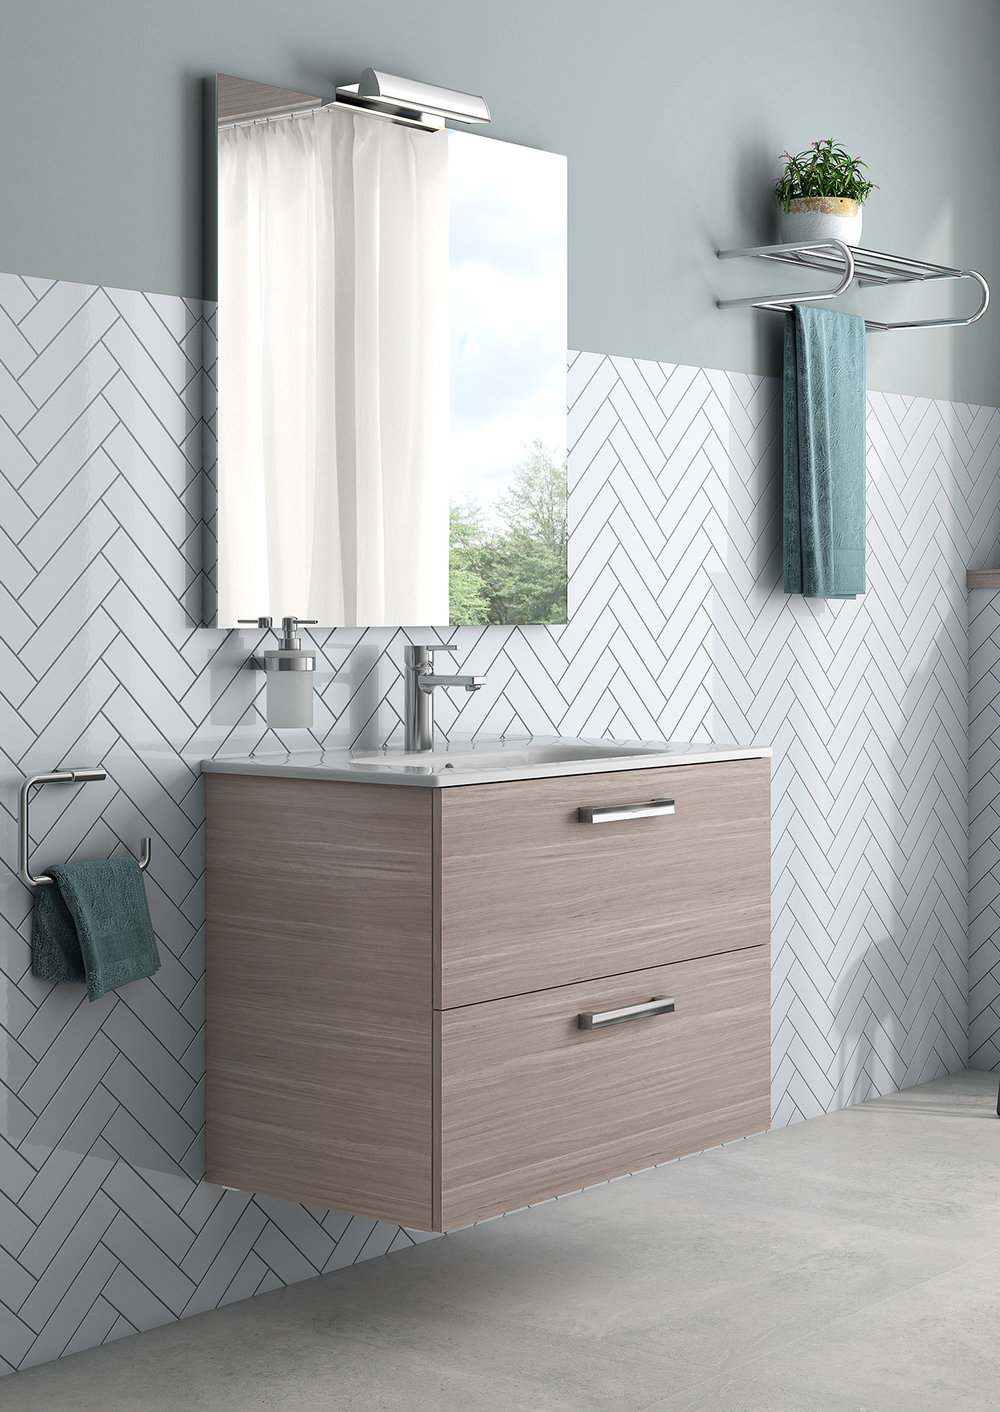 ASTER WALL-MOUNT VANITY WITH DRAWERS GREY WOOD VENEER - Finish: Textured MelamineDesign: Grey Wood VeneerWall-mounted24